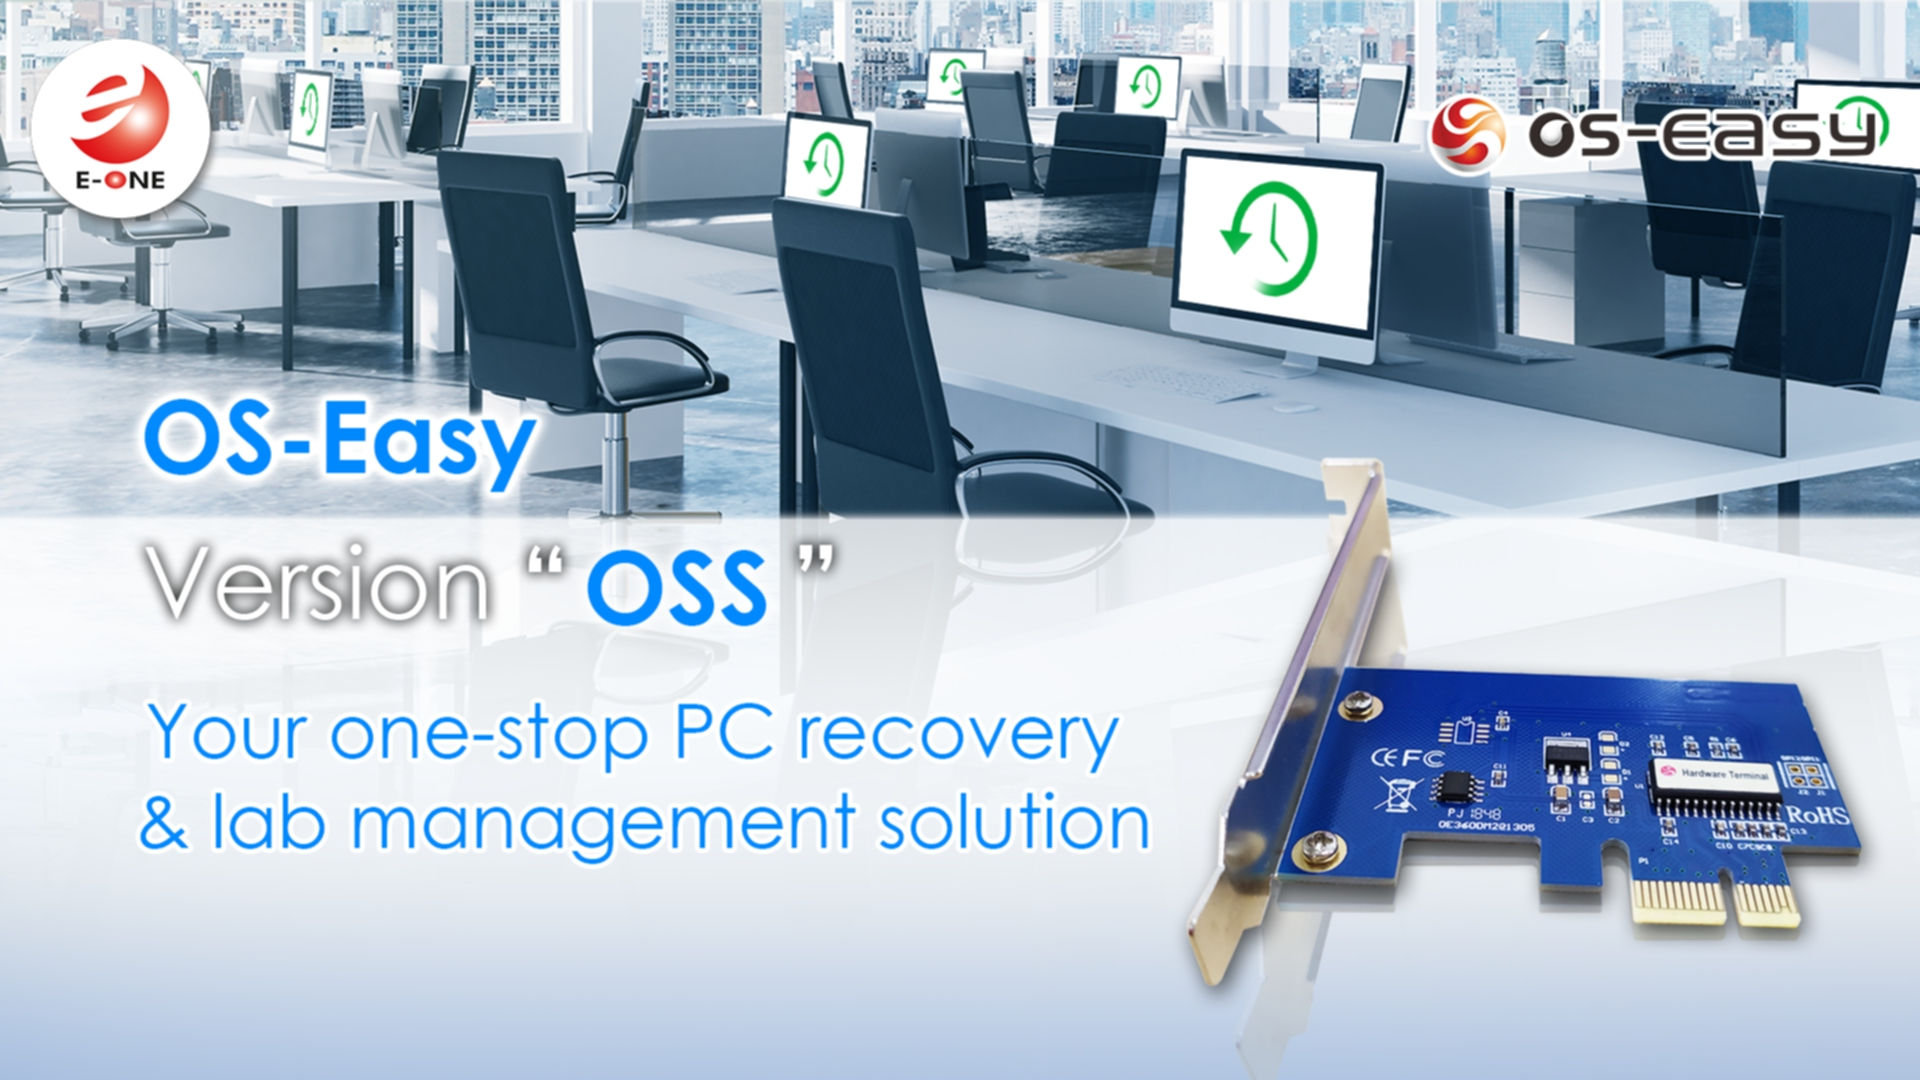 OS-Easy OSS Recovery System